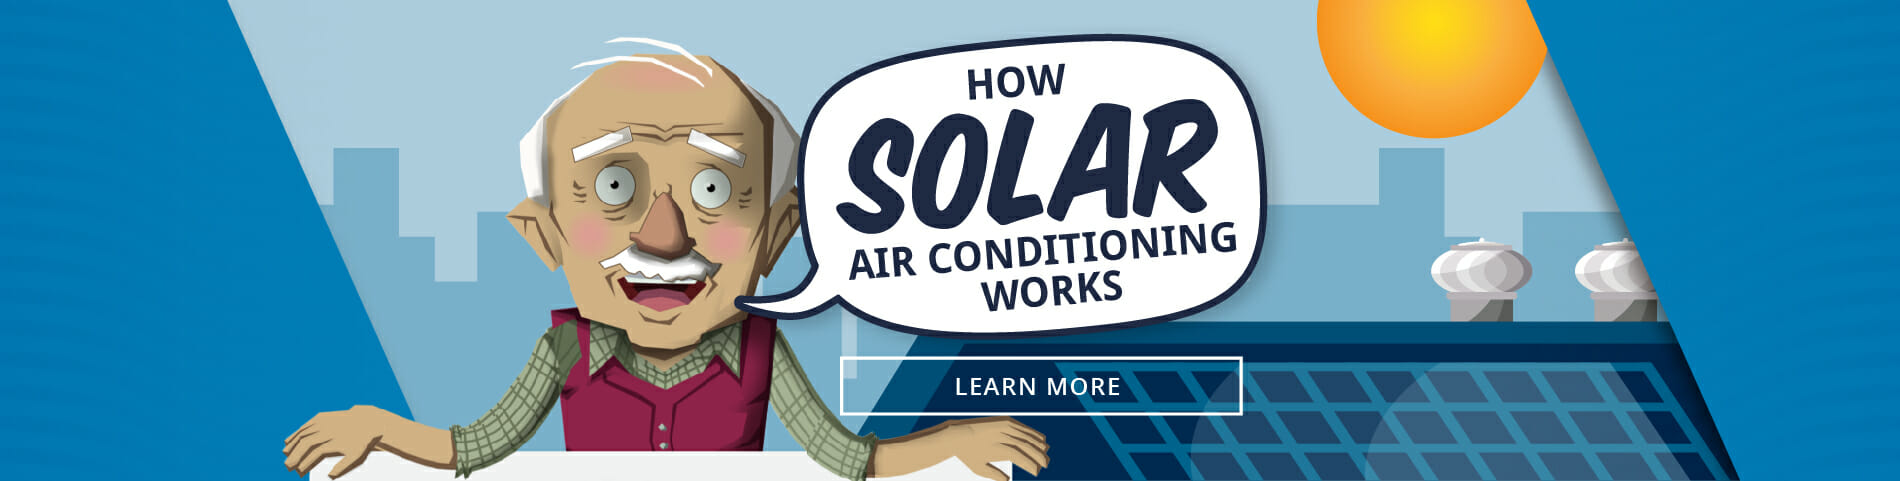 How Solar Air Conditioning Works